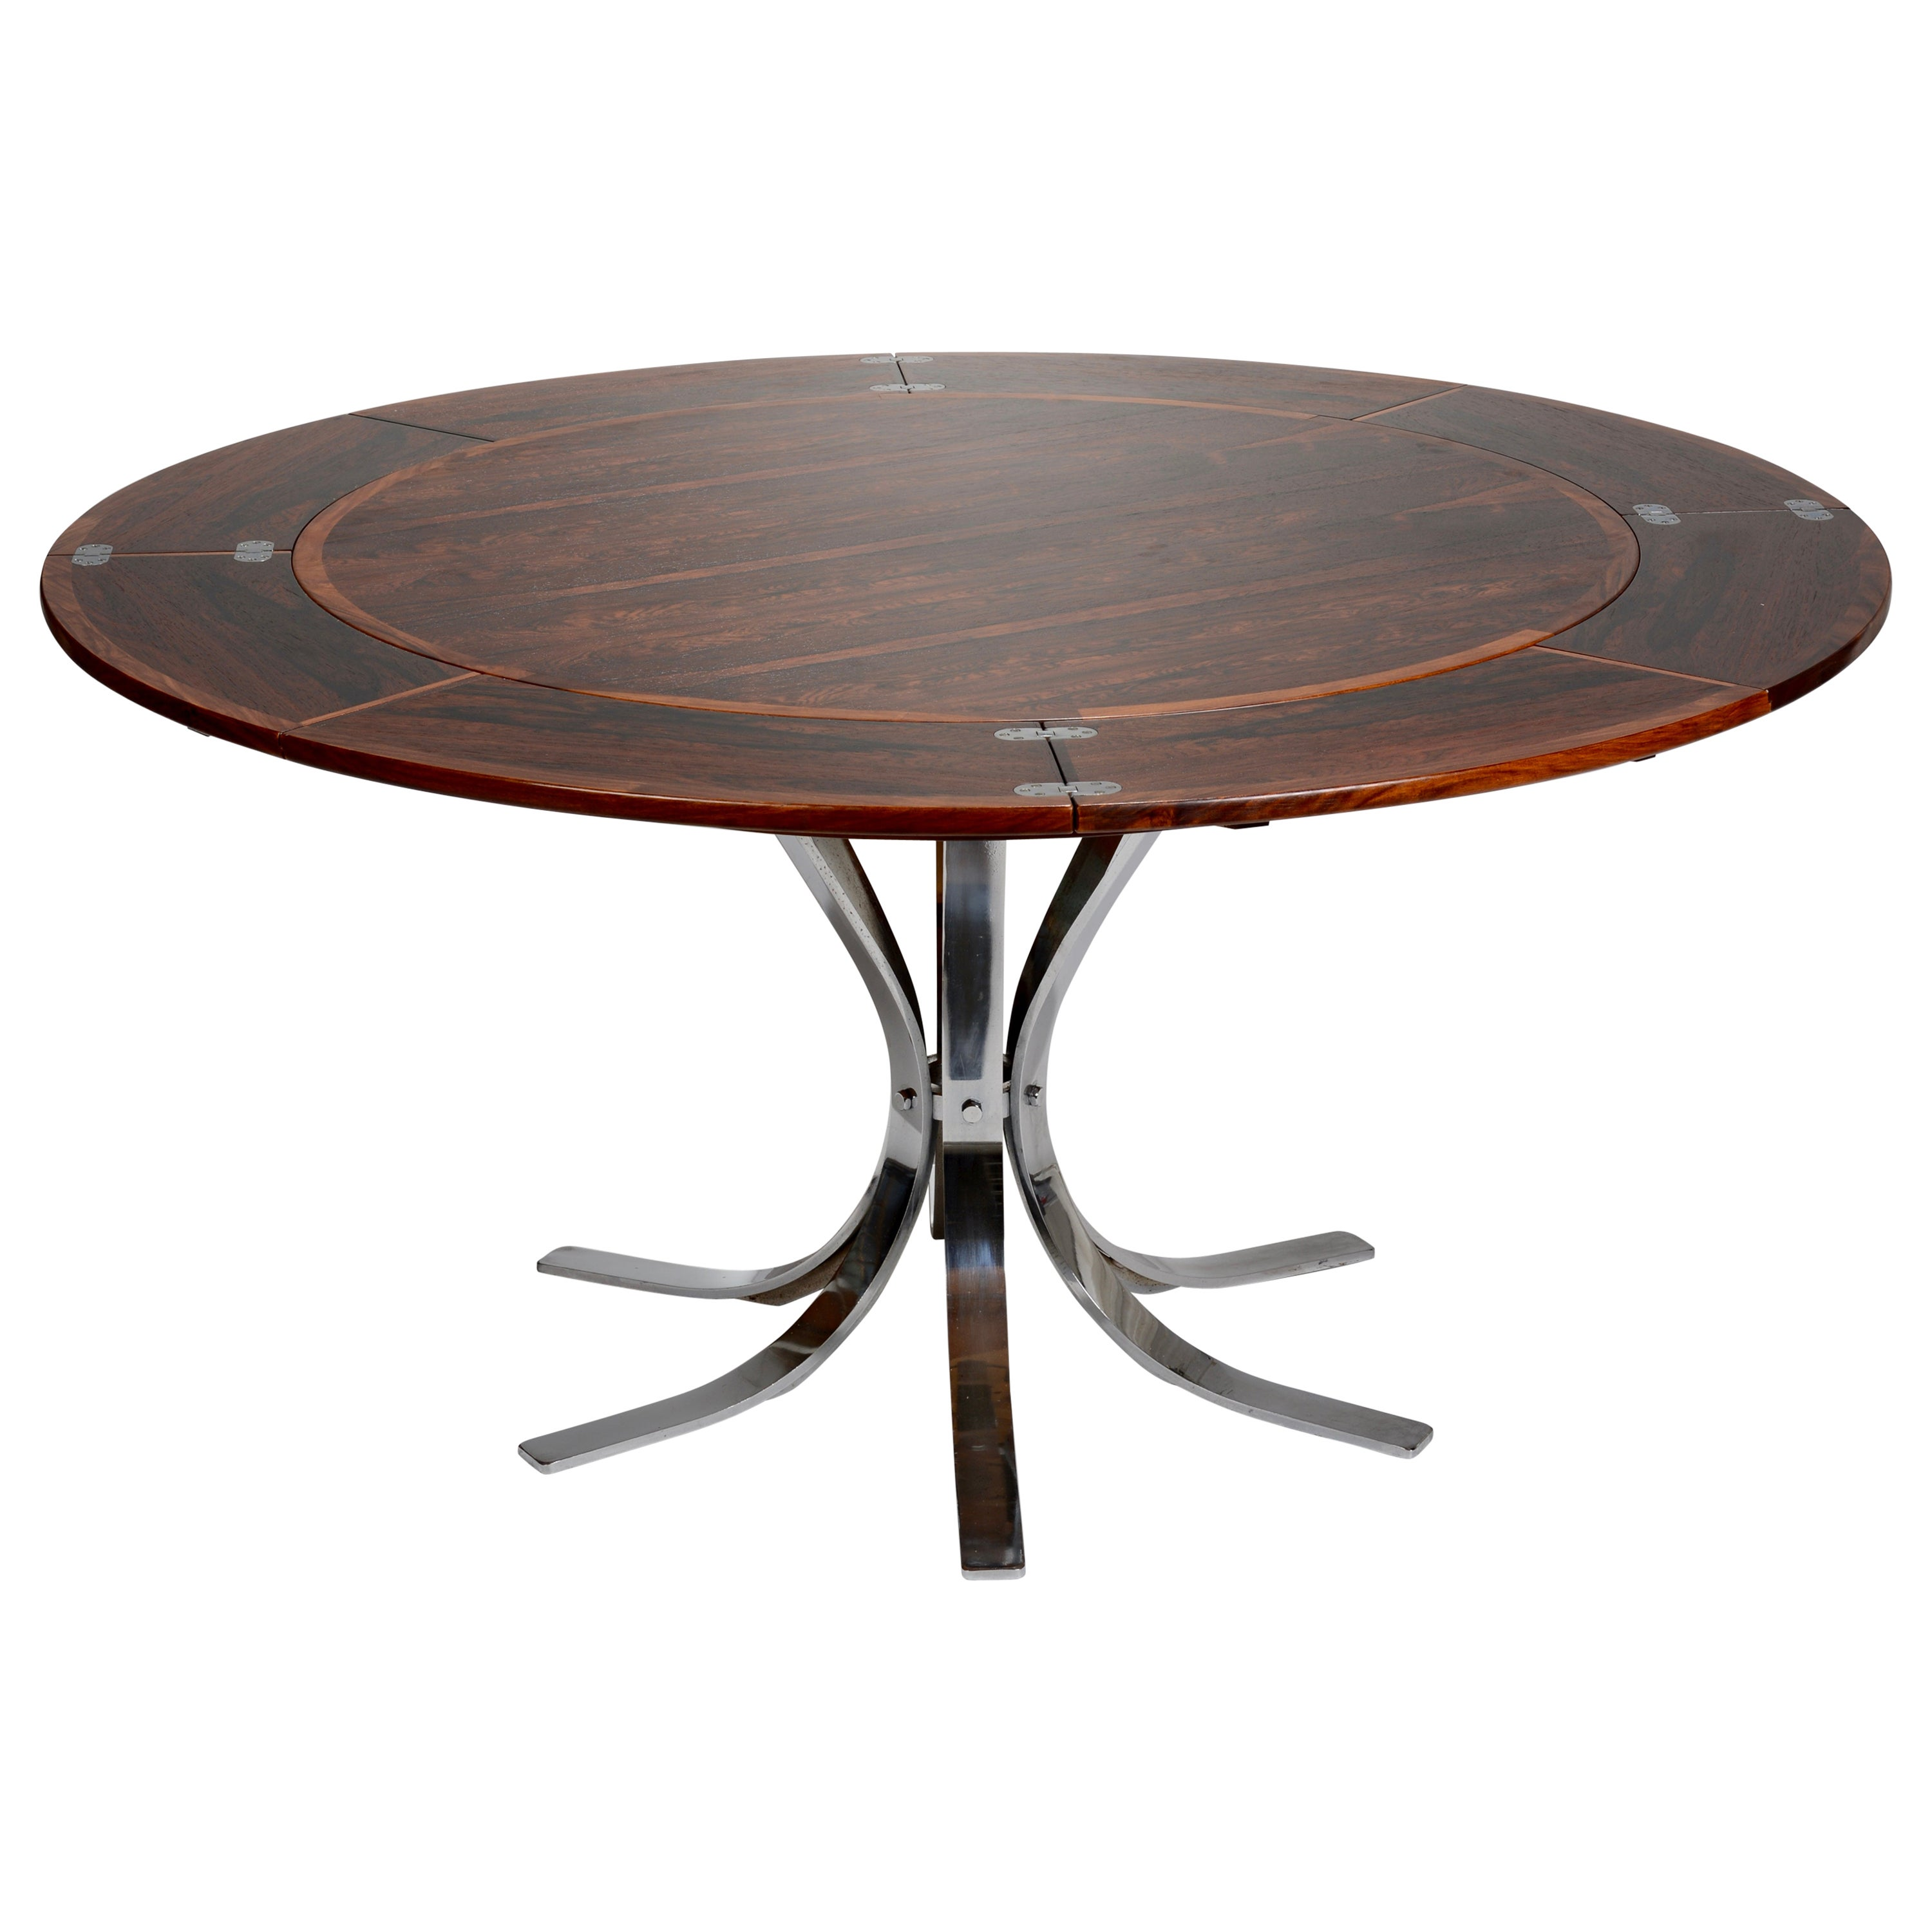 """Danish Rosewood """"Lotus Design"""" Dining Table by Dyrlund"""